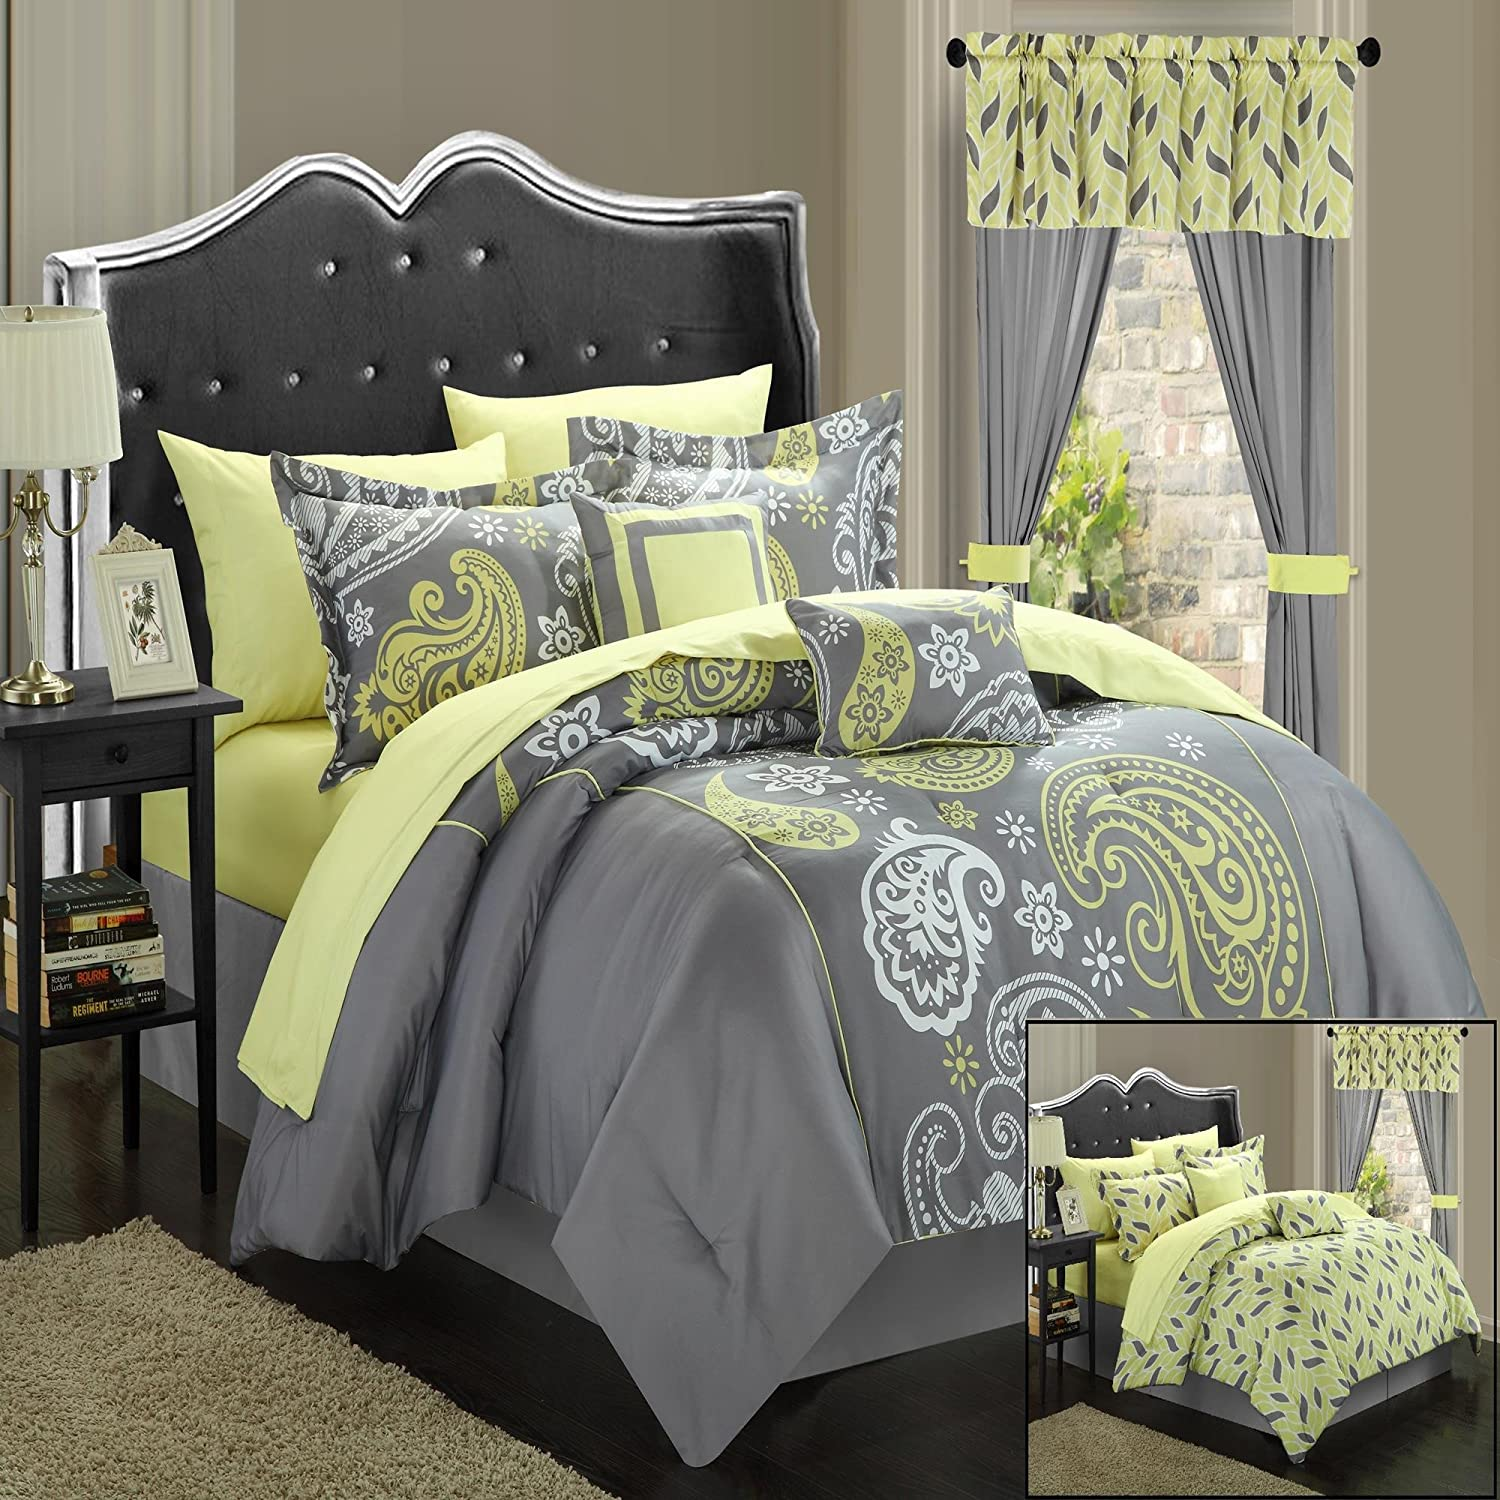 Amazon com olivia paisley print grey yellow king 20 piece mega comforter bed in a bag set home kitchen